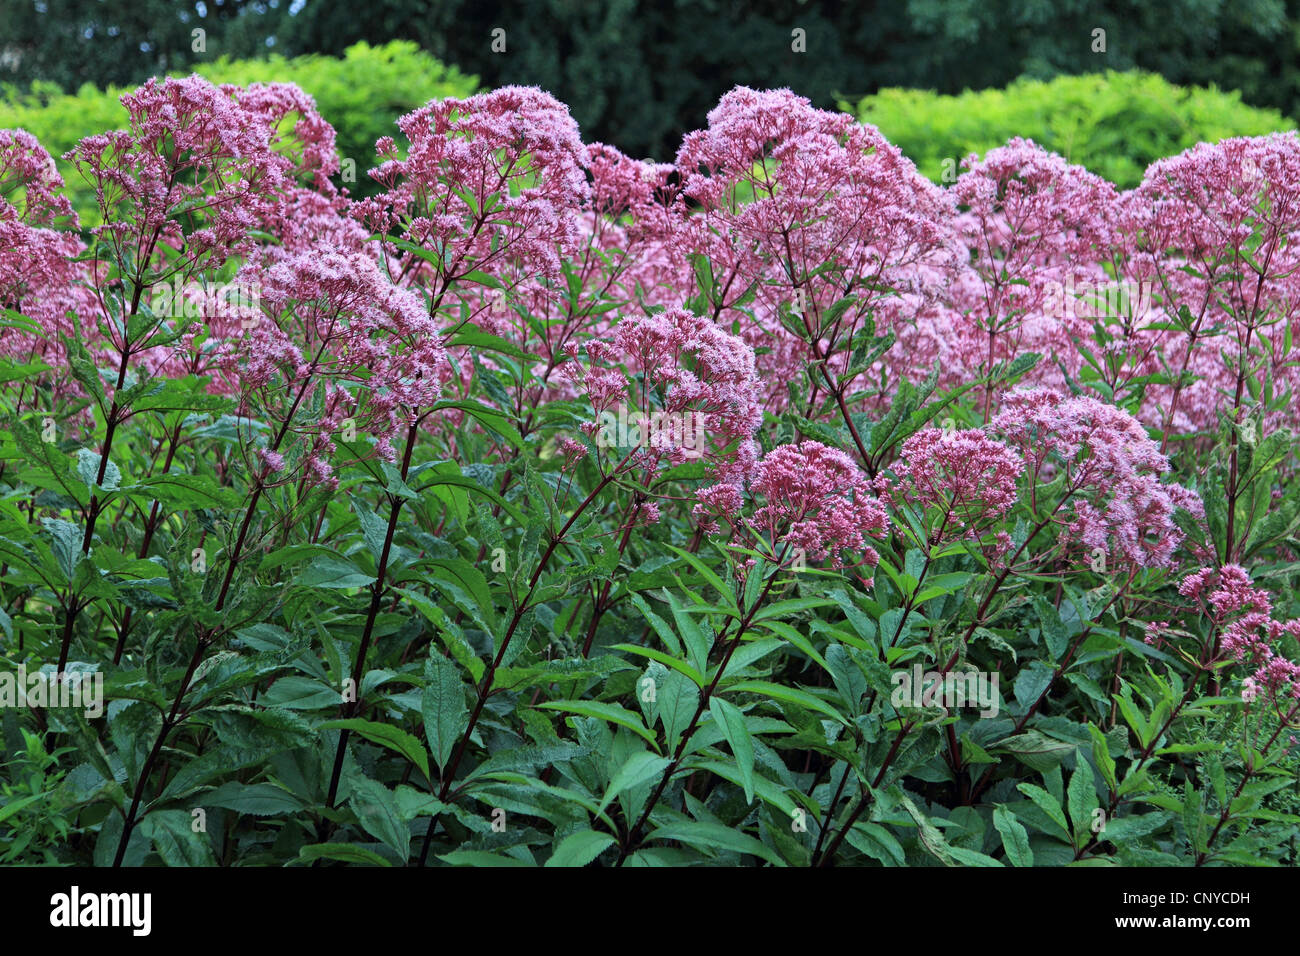 Joe Pye weed (Eupatorium spec.), blooming - Stock Image